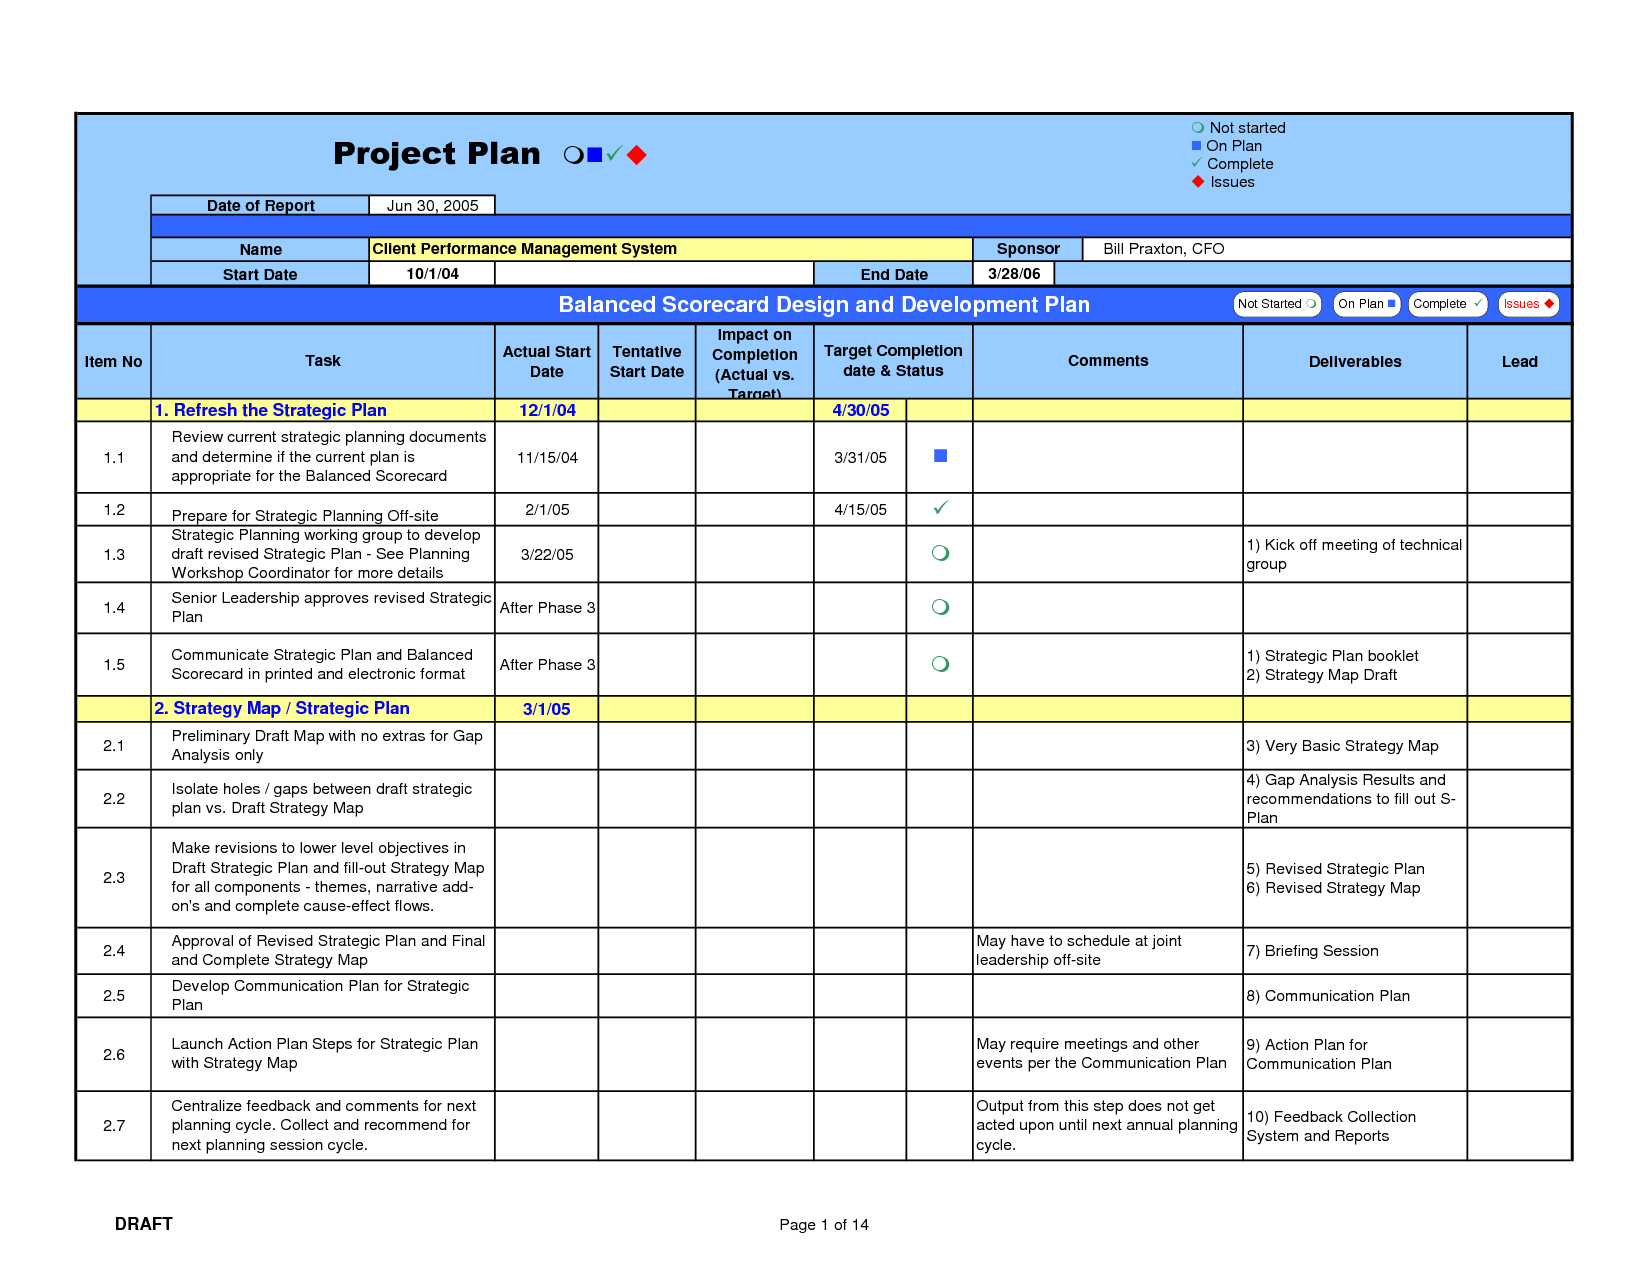 Project Management Plan Pmi Template Free Change Excel Construction For Project Management Plan Templates